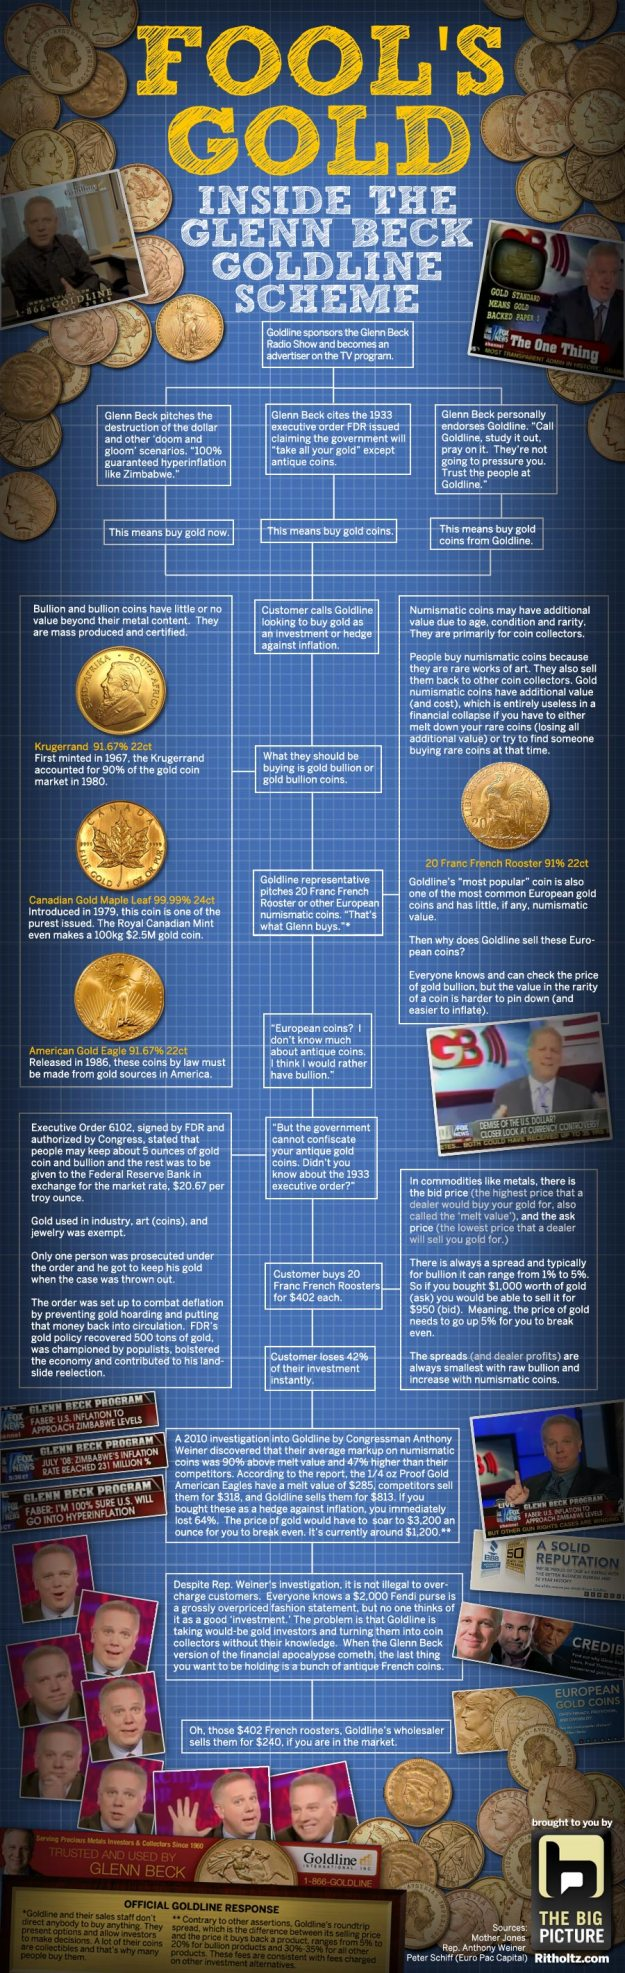 Infographic on Glenn Beck and Goldline